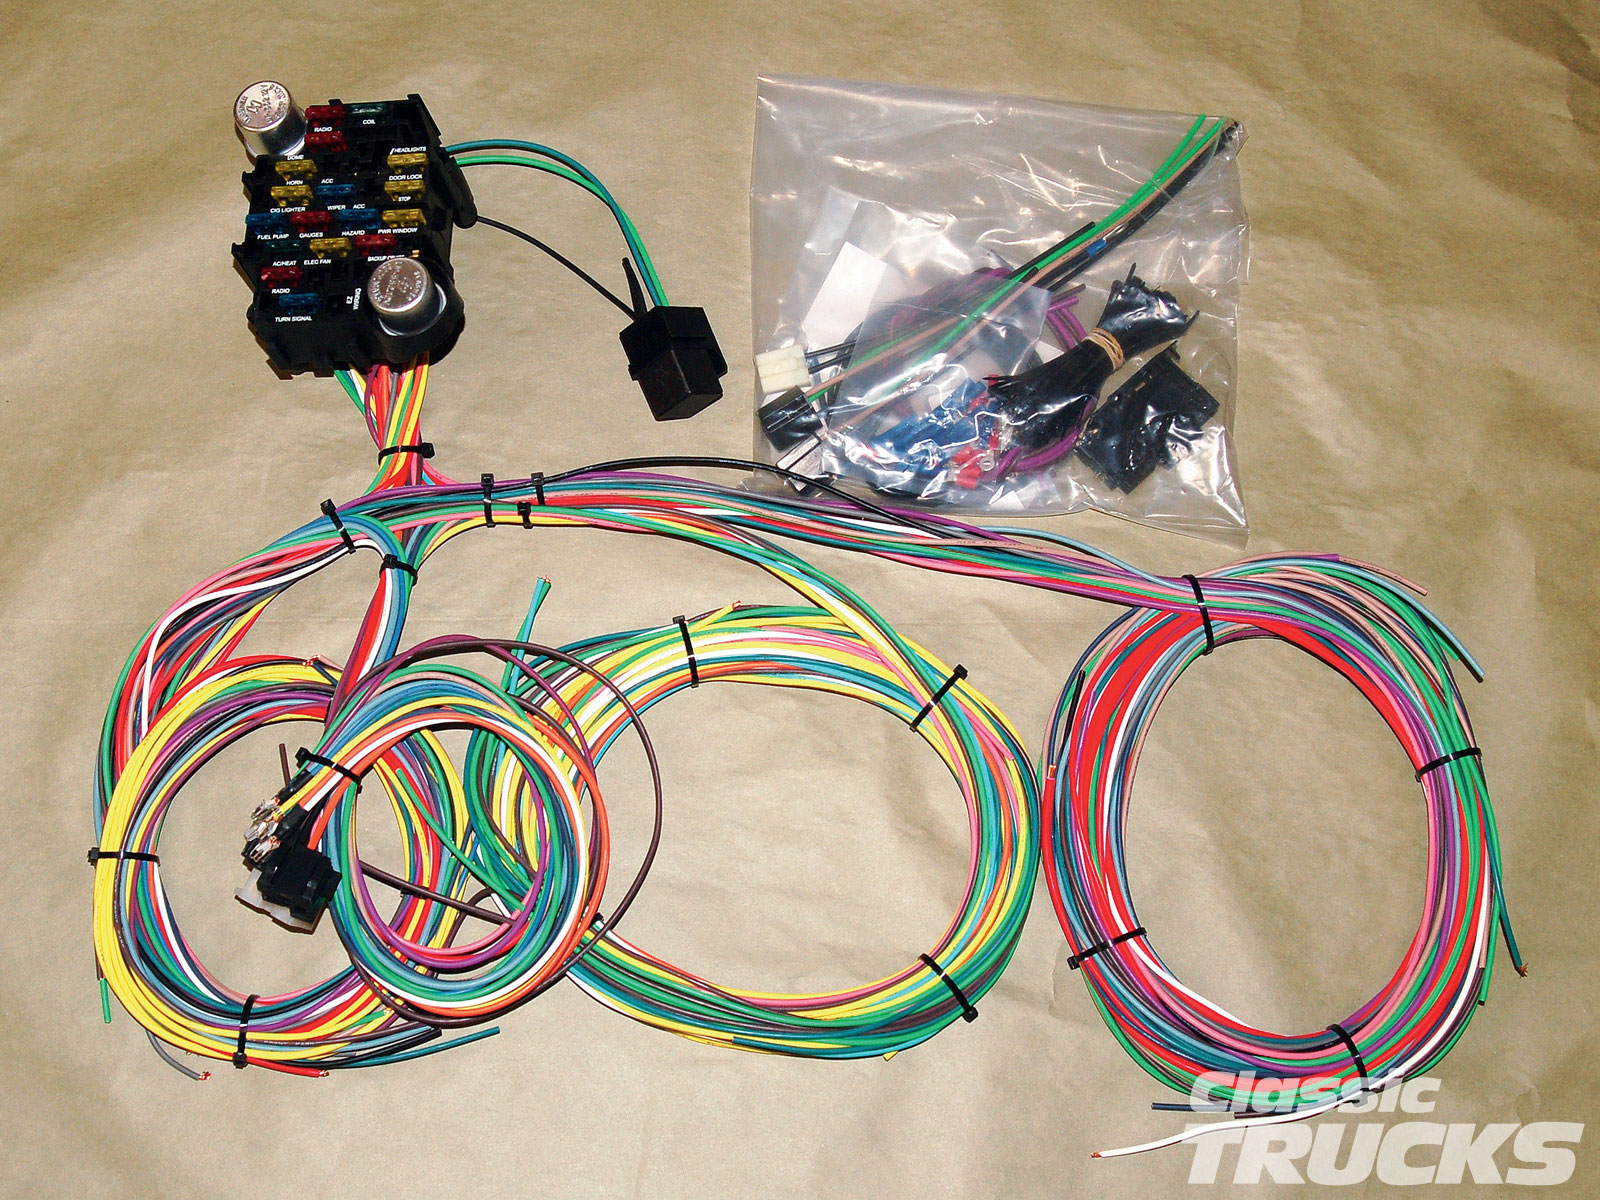 1010clt 02 o aftermarket wiring harness install kit?resize=640%2C480 how much does a wire harness cost to replace hobbiesxstyle how much does it cost to replace a wiring harness at mifinder.co